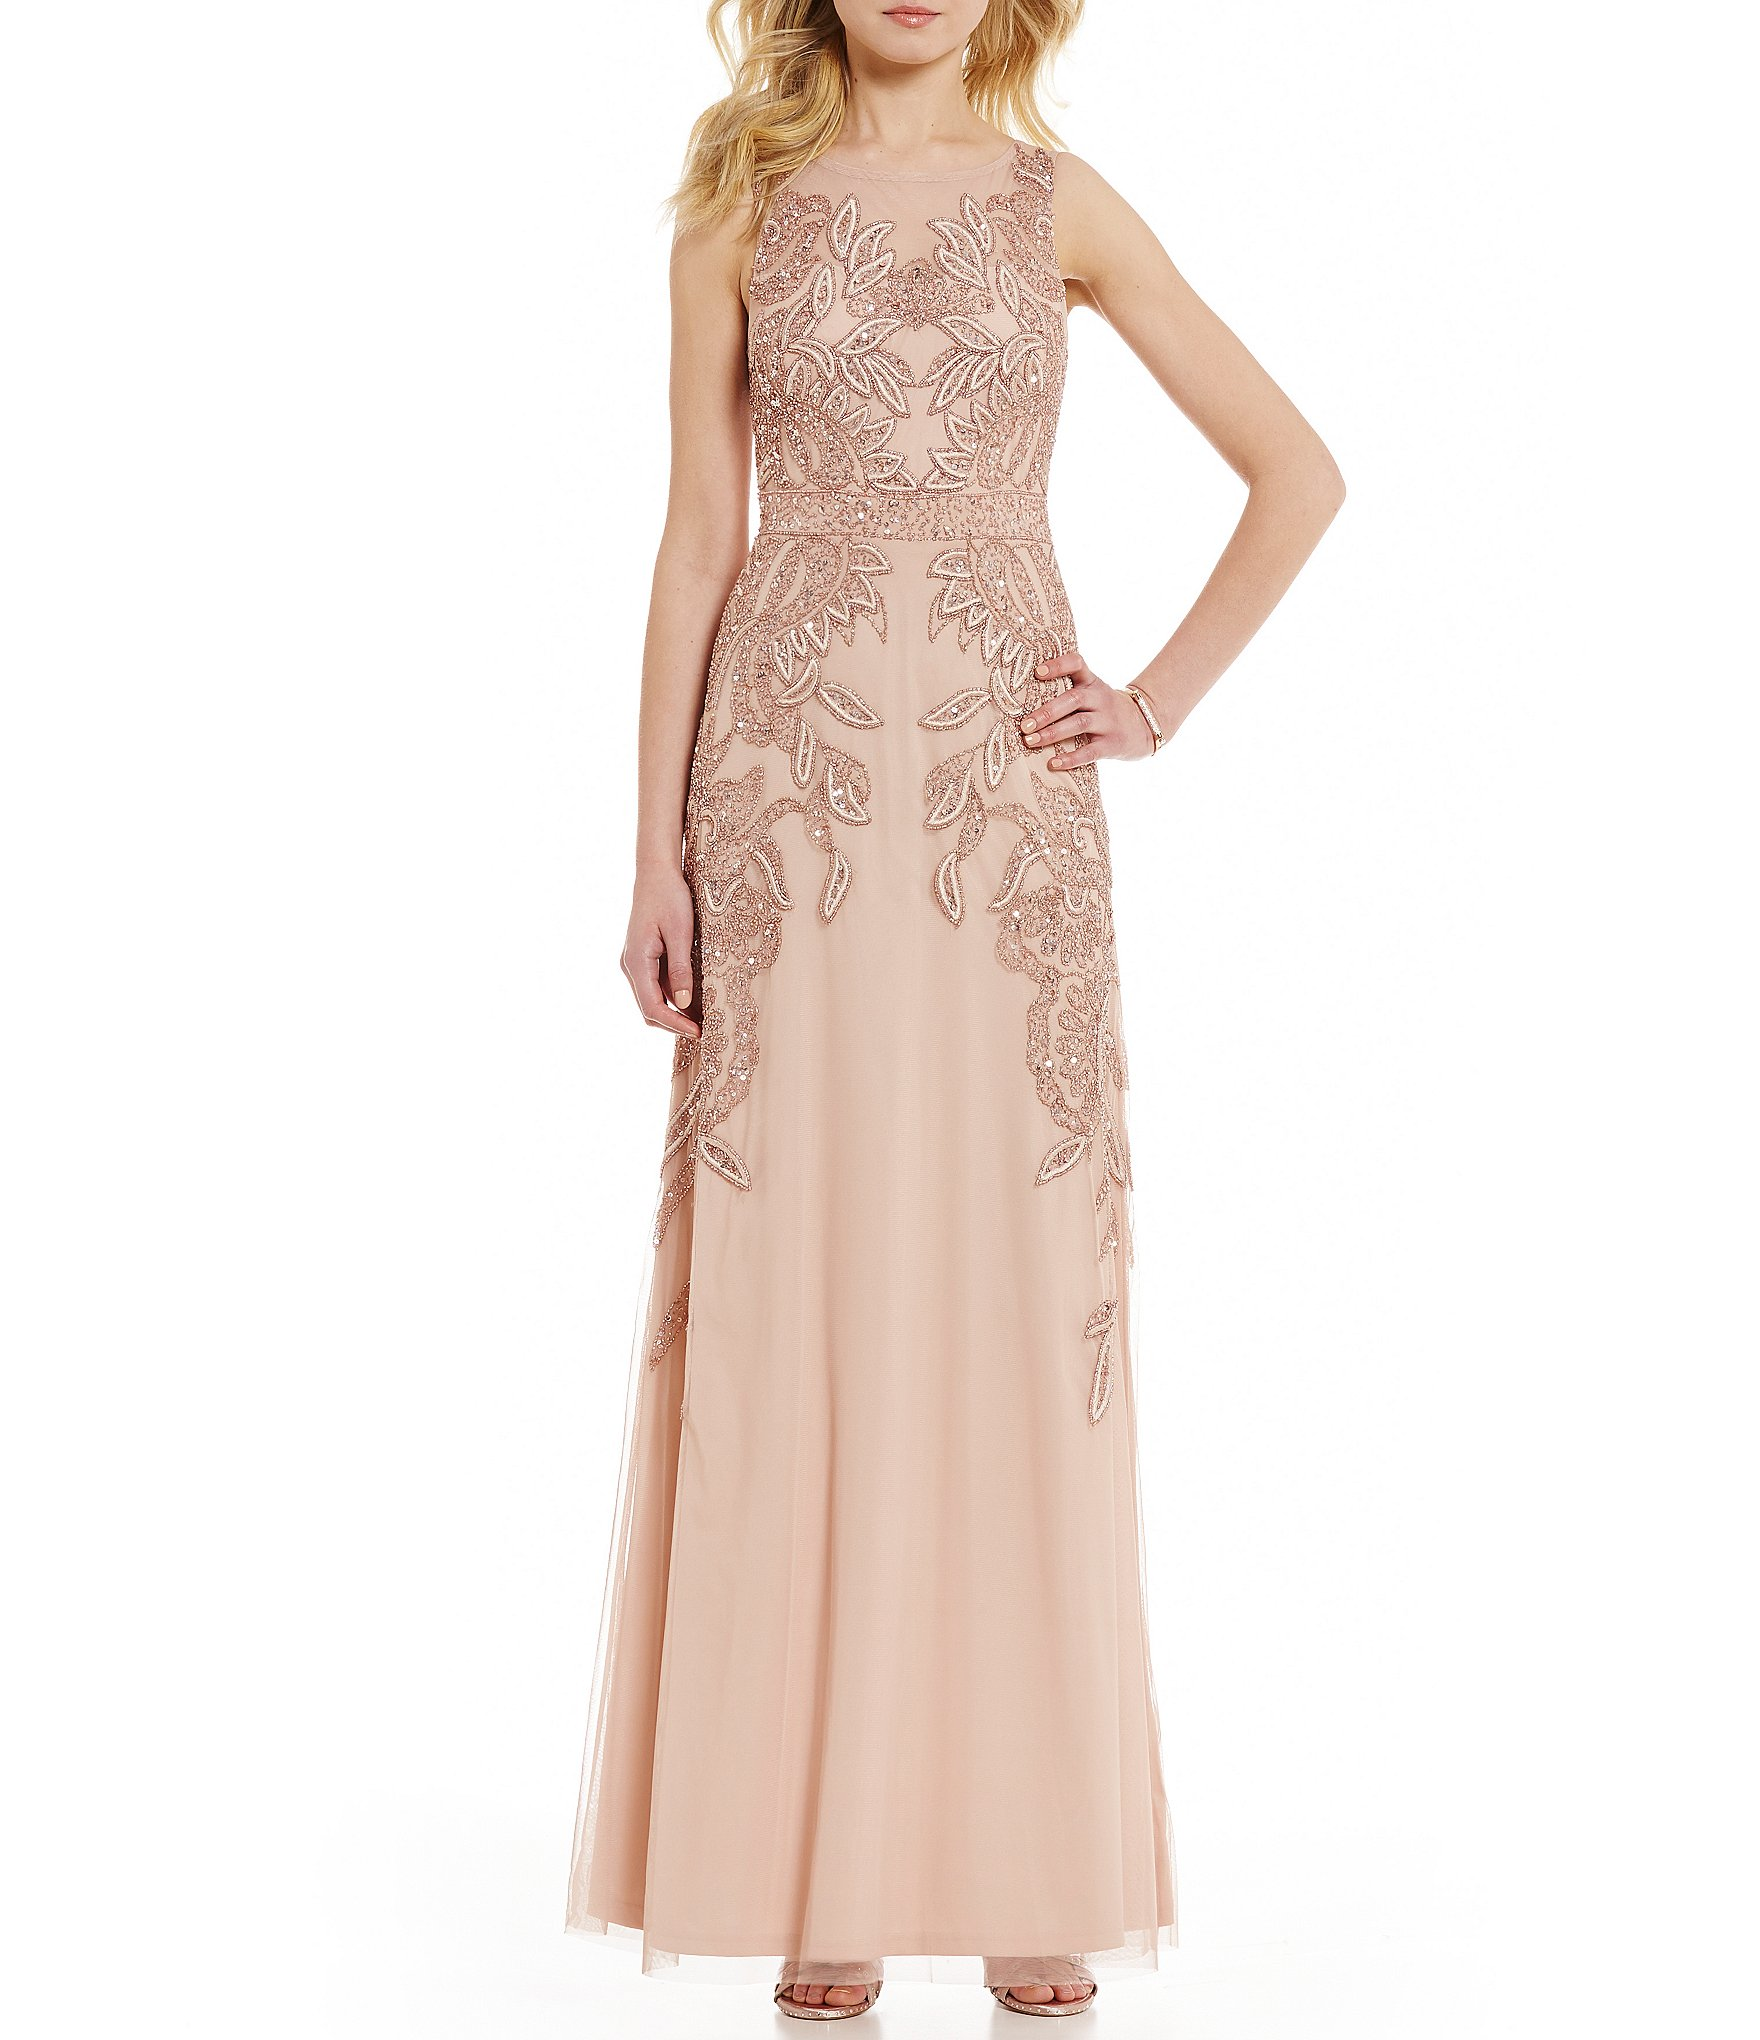 Adrianna papell petite sleeveless beaded gown dillards for Wedding dresses with gold beading